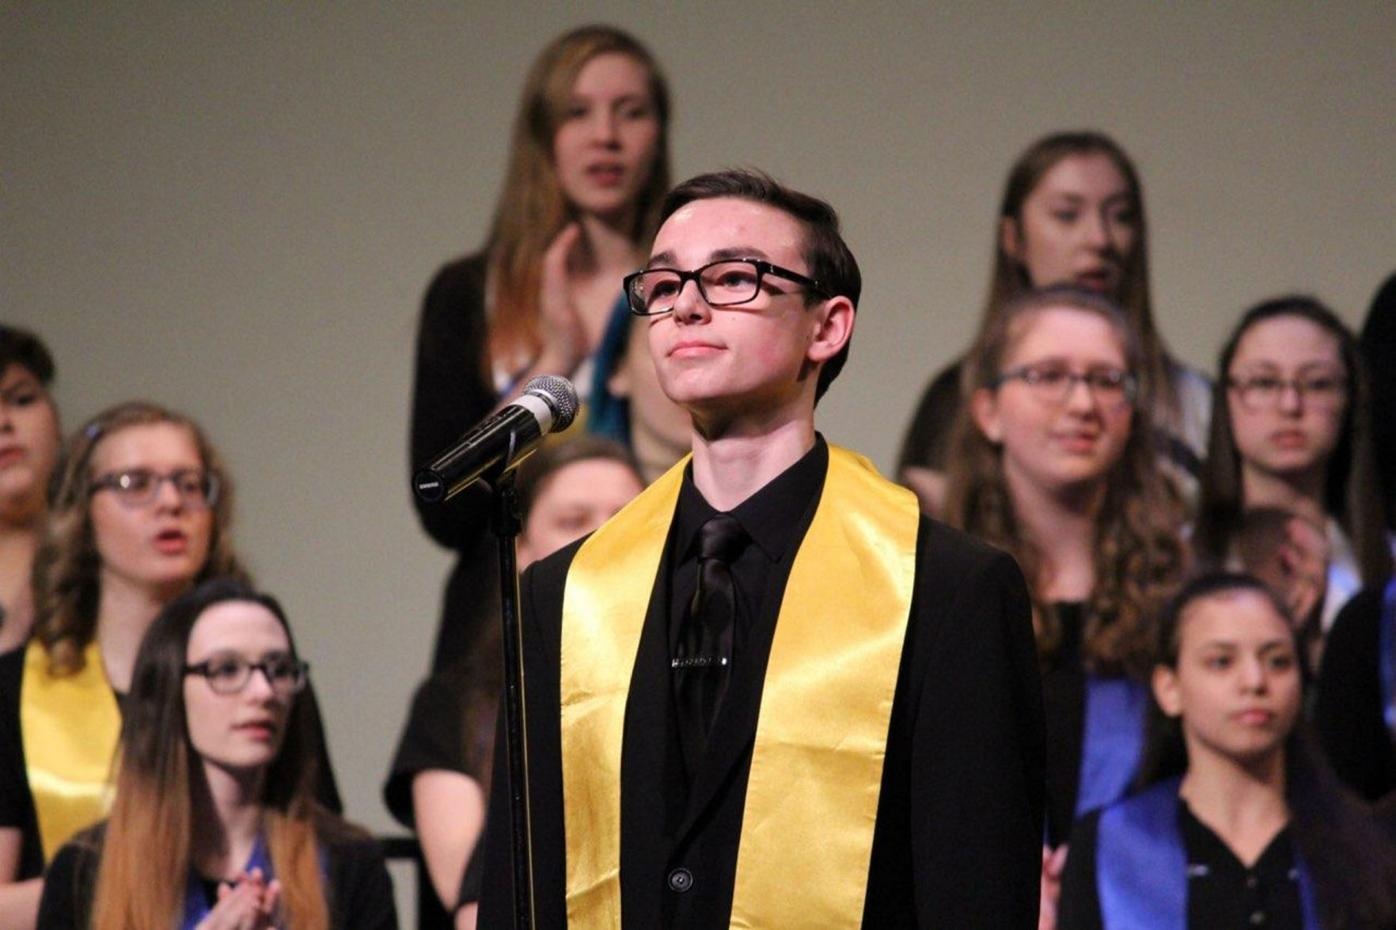 Singing sensation: Valley View senior recognized for outstanding talent